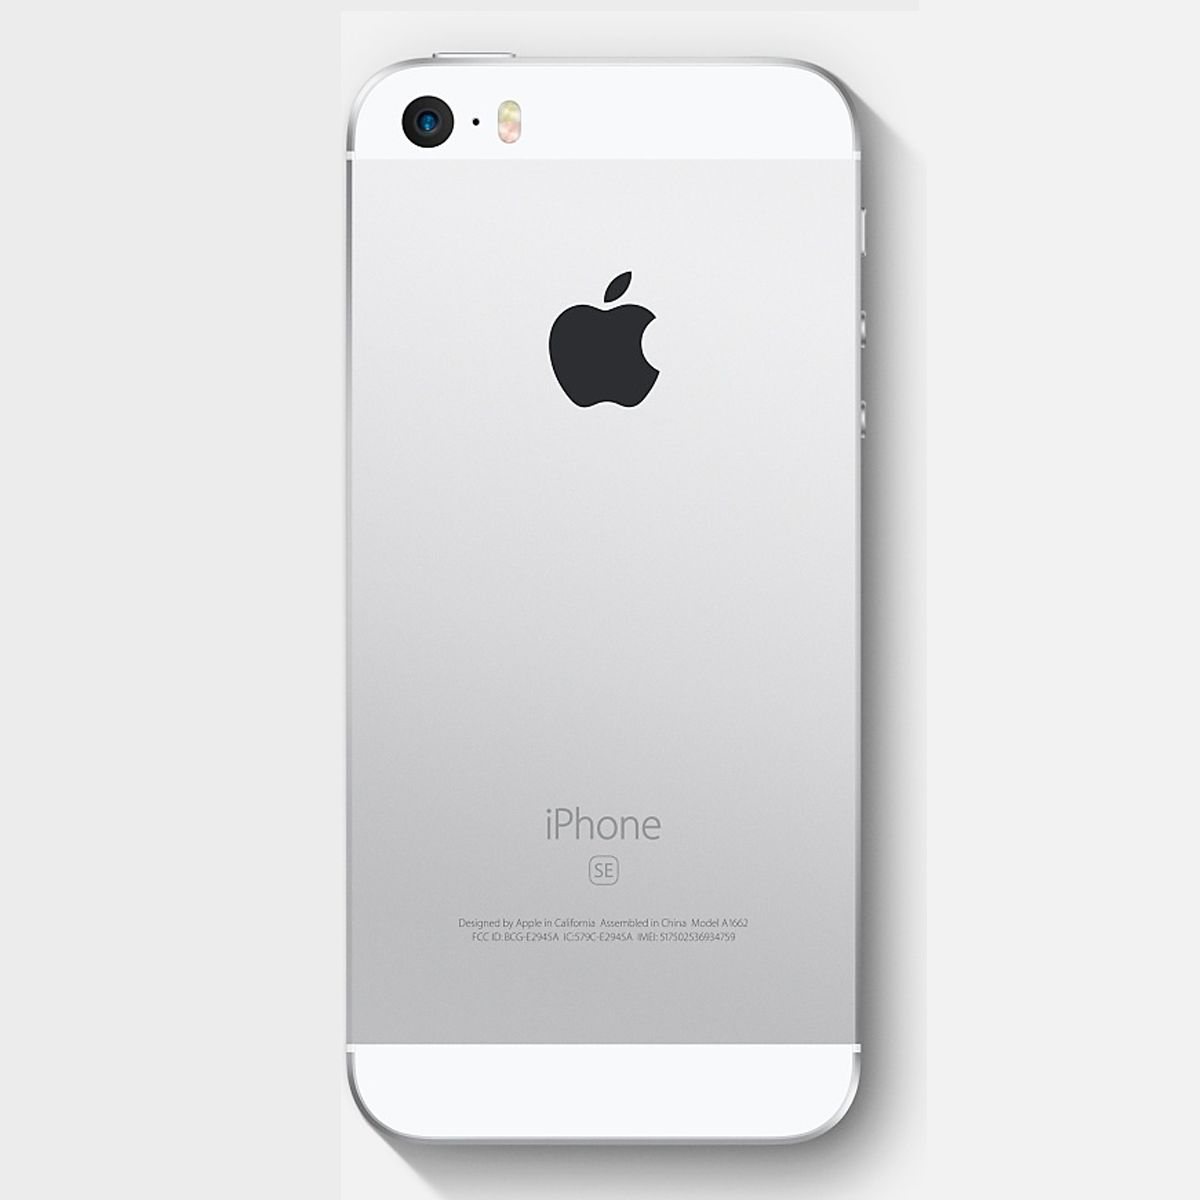 Iphone Se Gb Caracteristicas Y Especificaciones